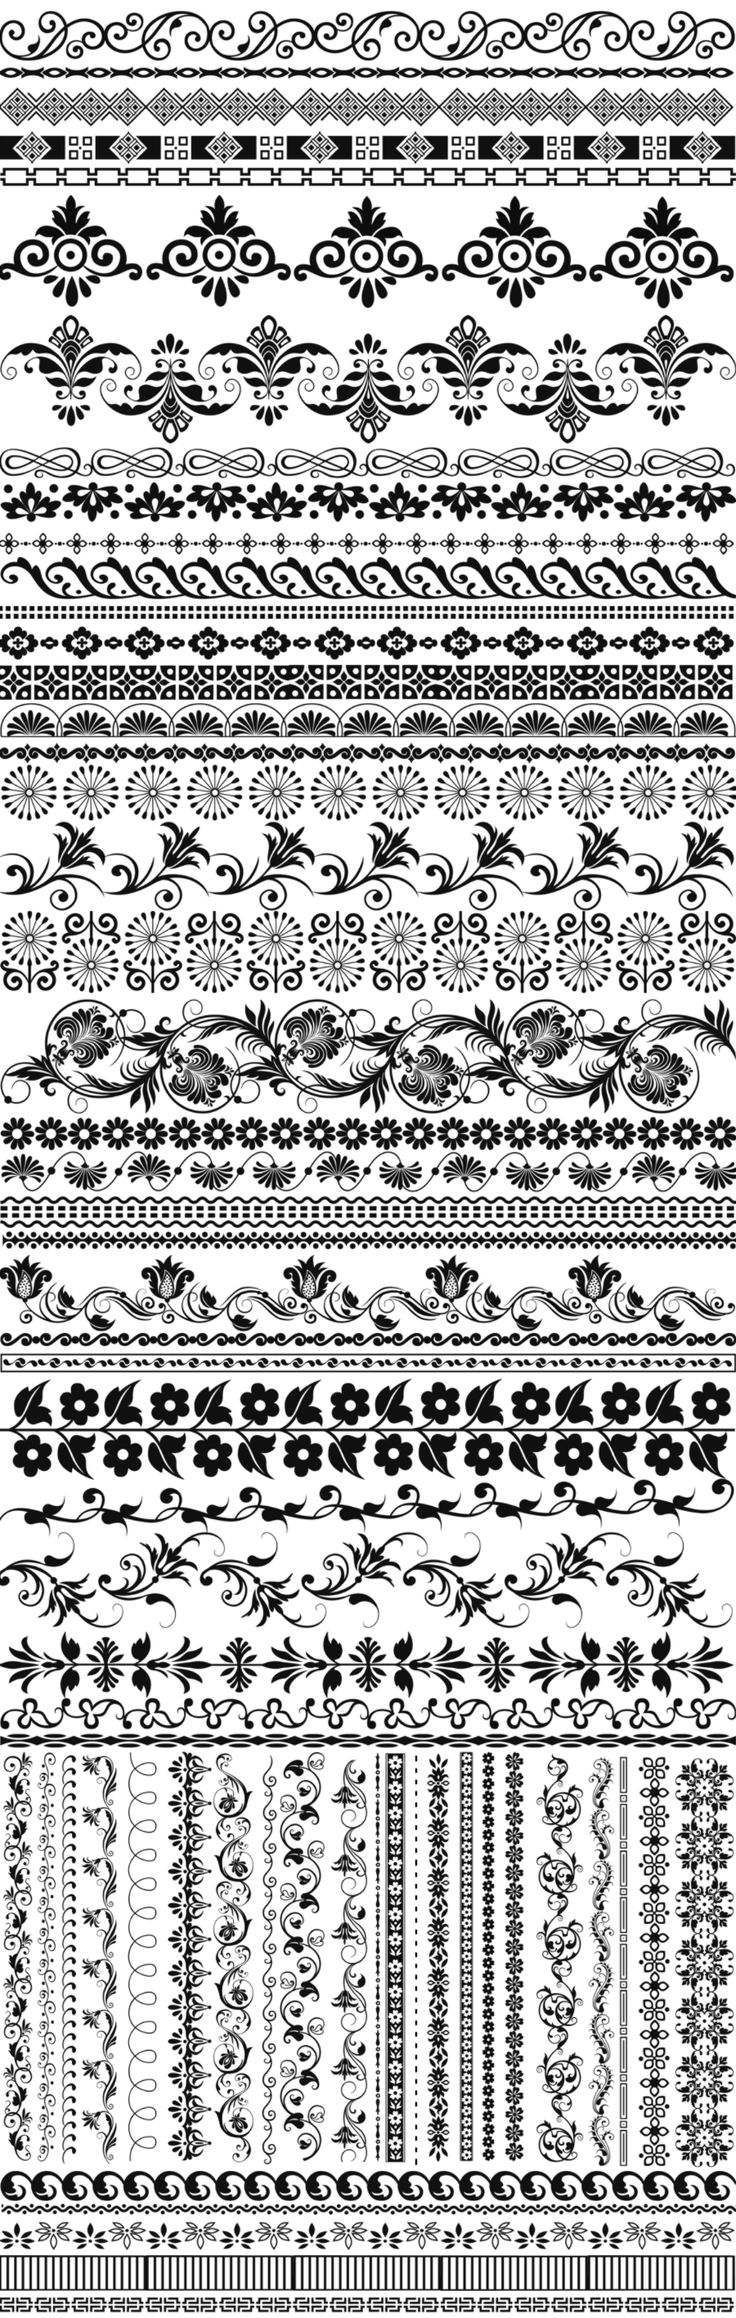 lace border by ElizaVladi.deviantart.com